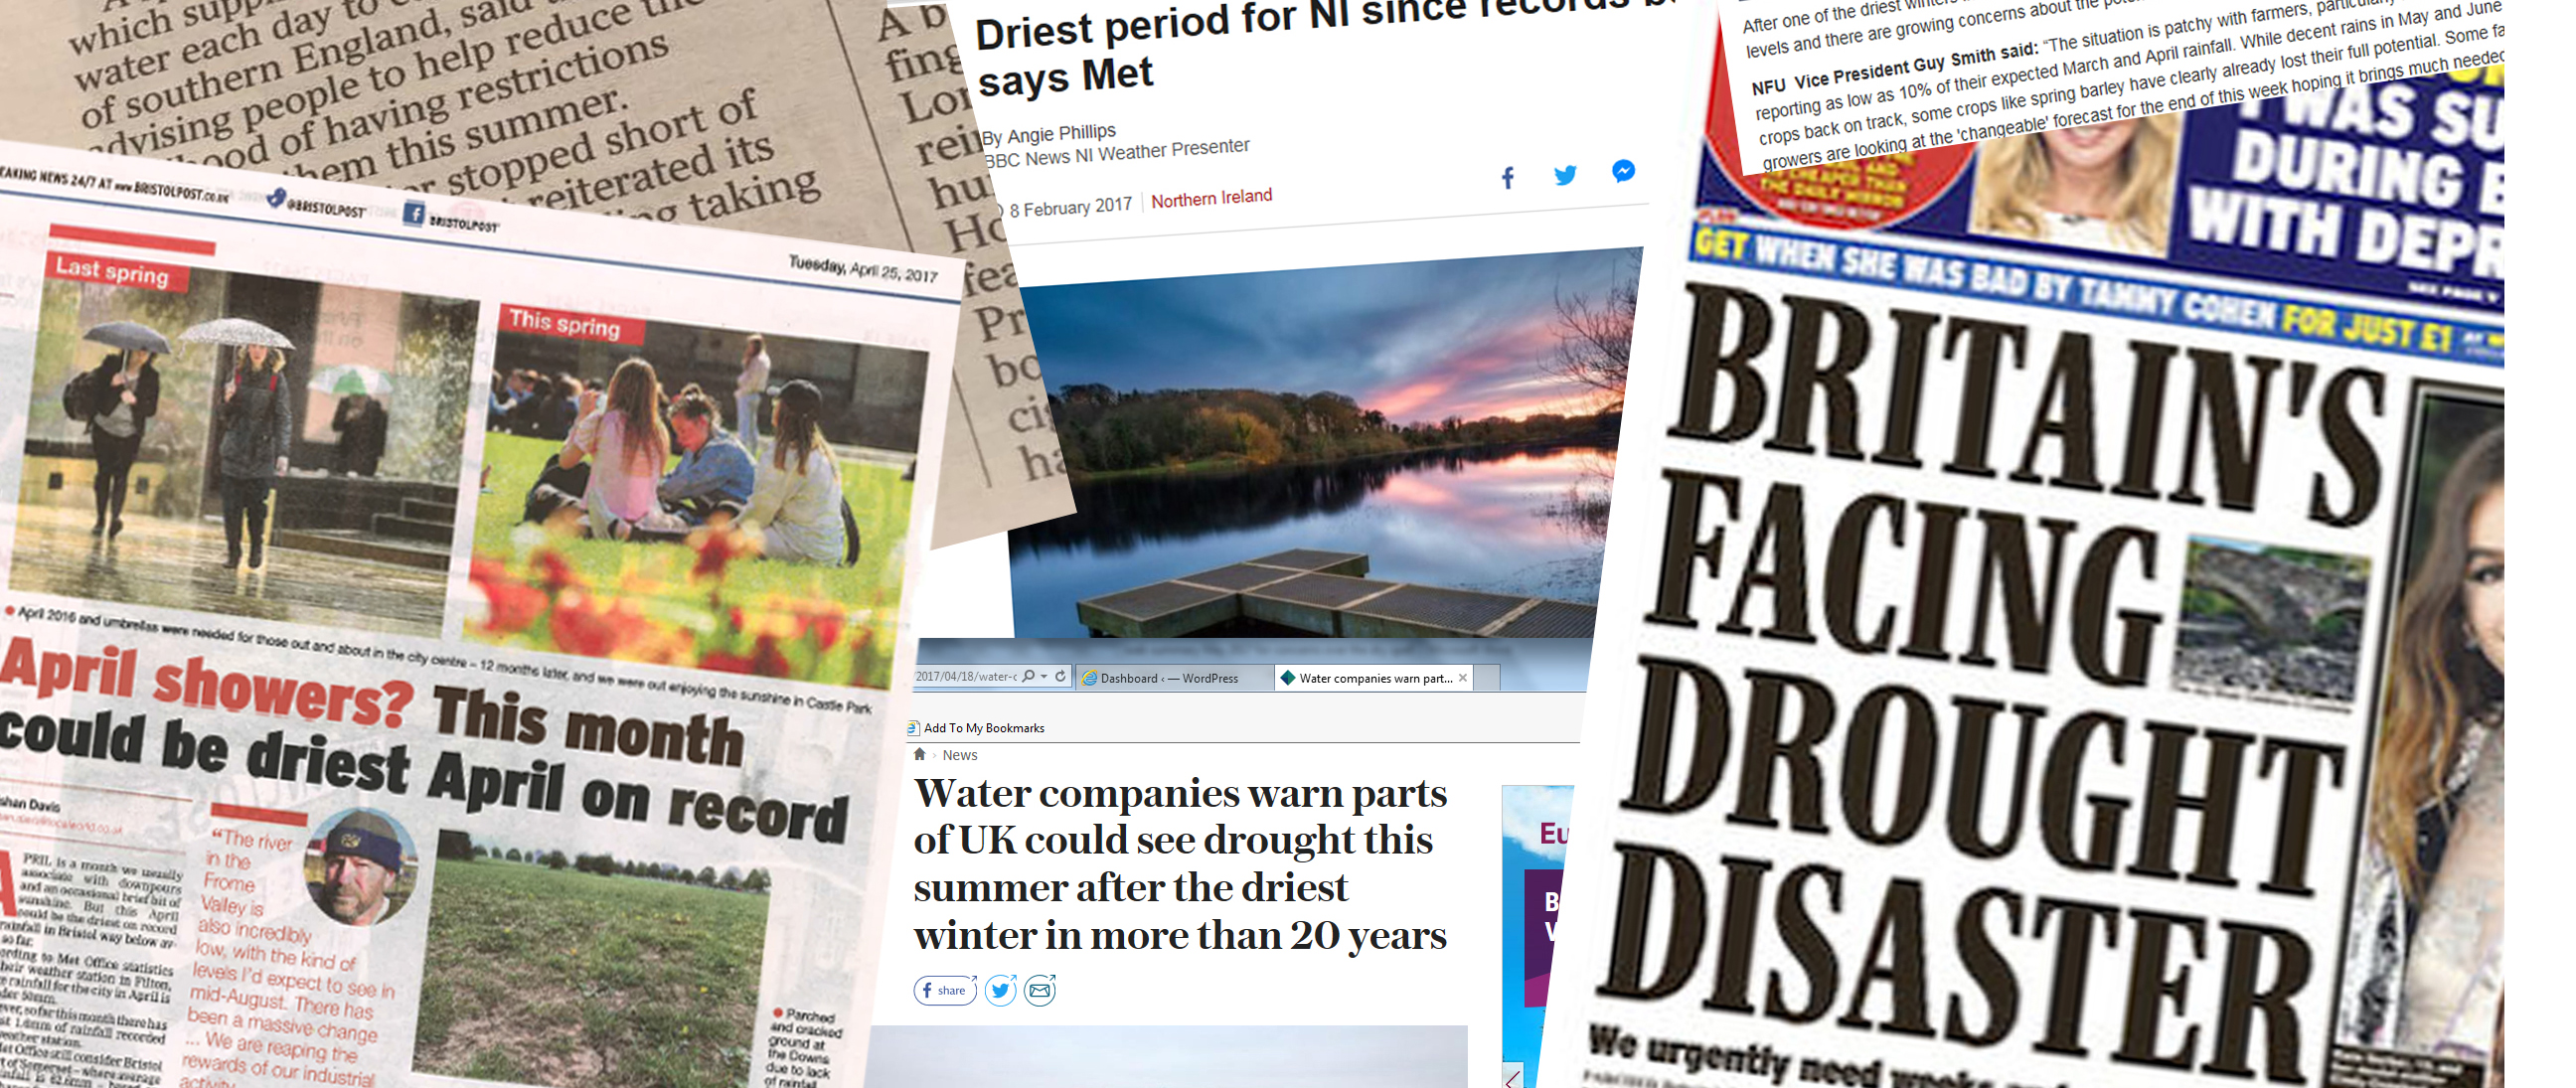 The Dry Spell in the UK media